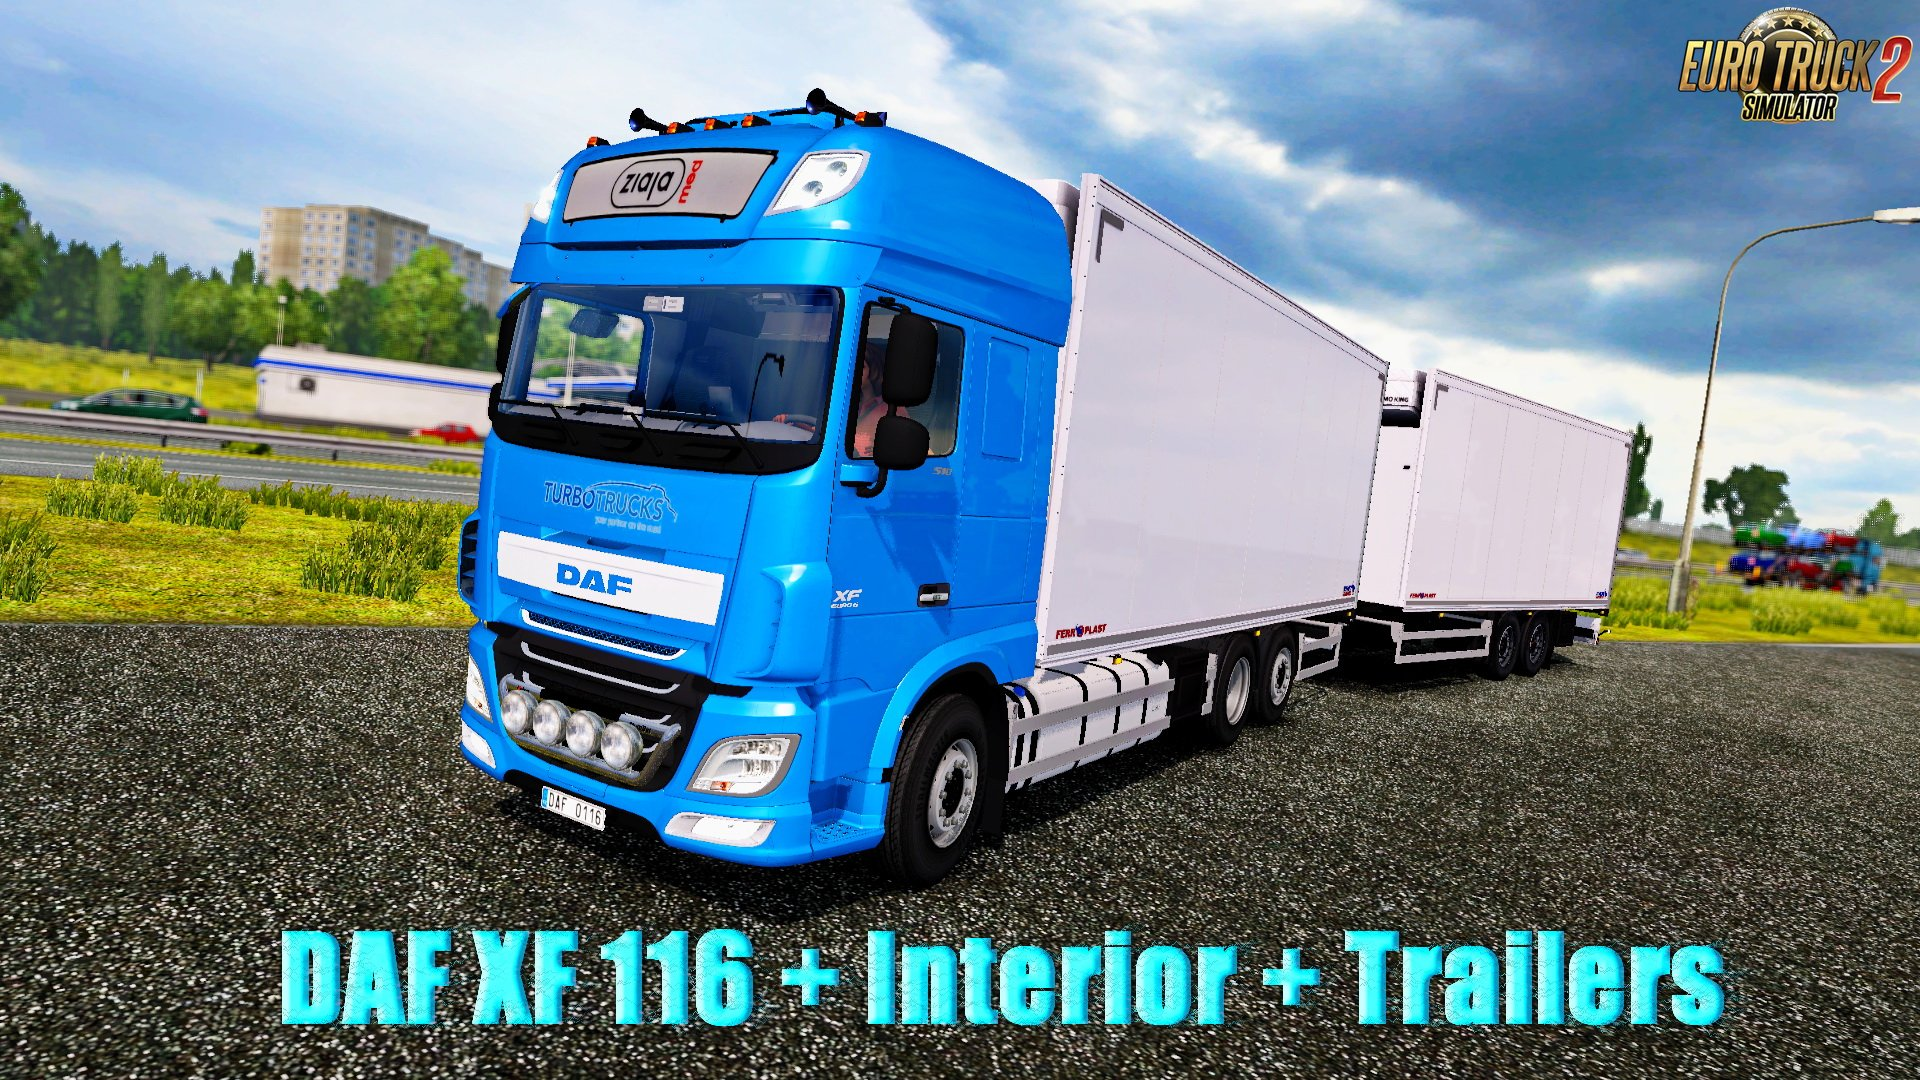 DAF XF 116 + Interior + Trailers v0.6 (Beta Version) (1.26.x)